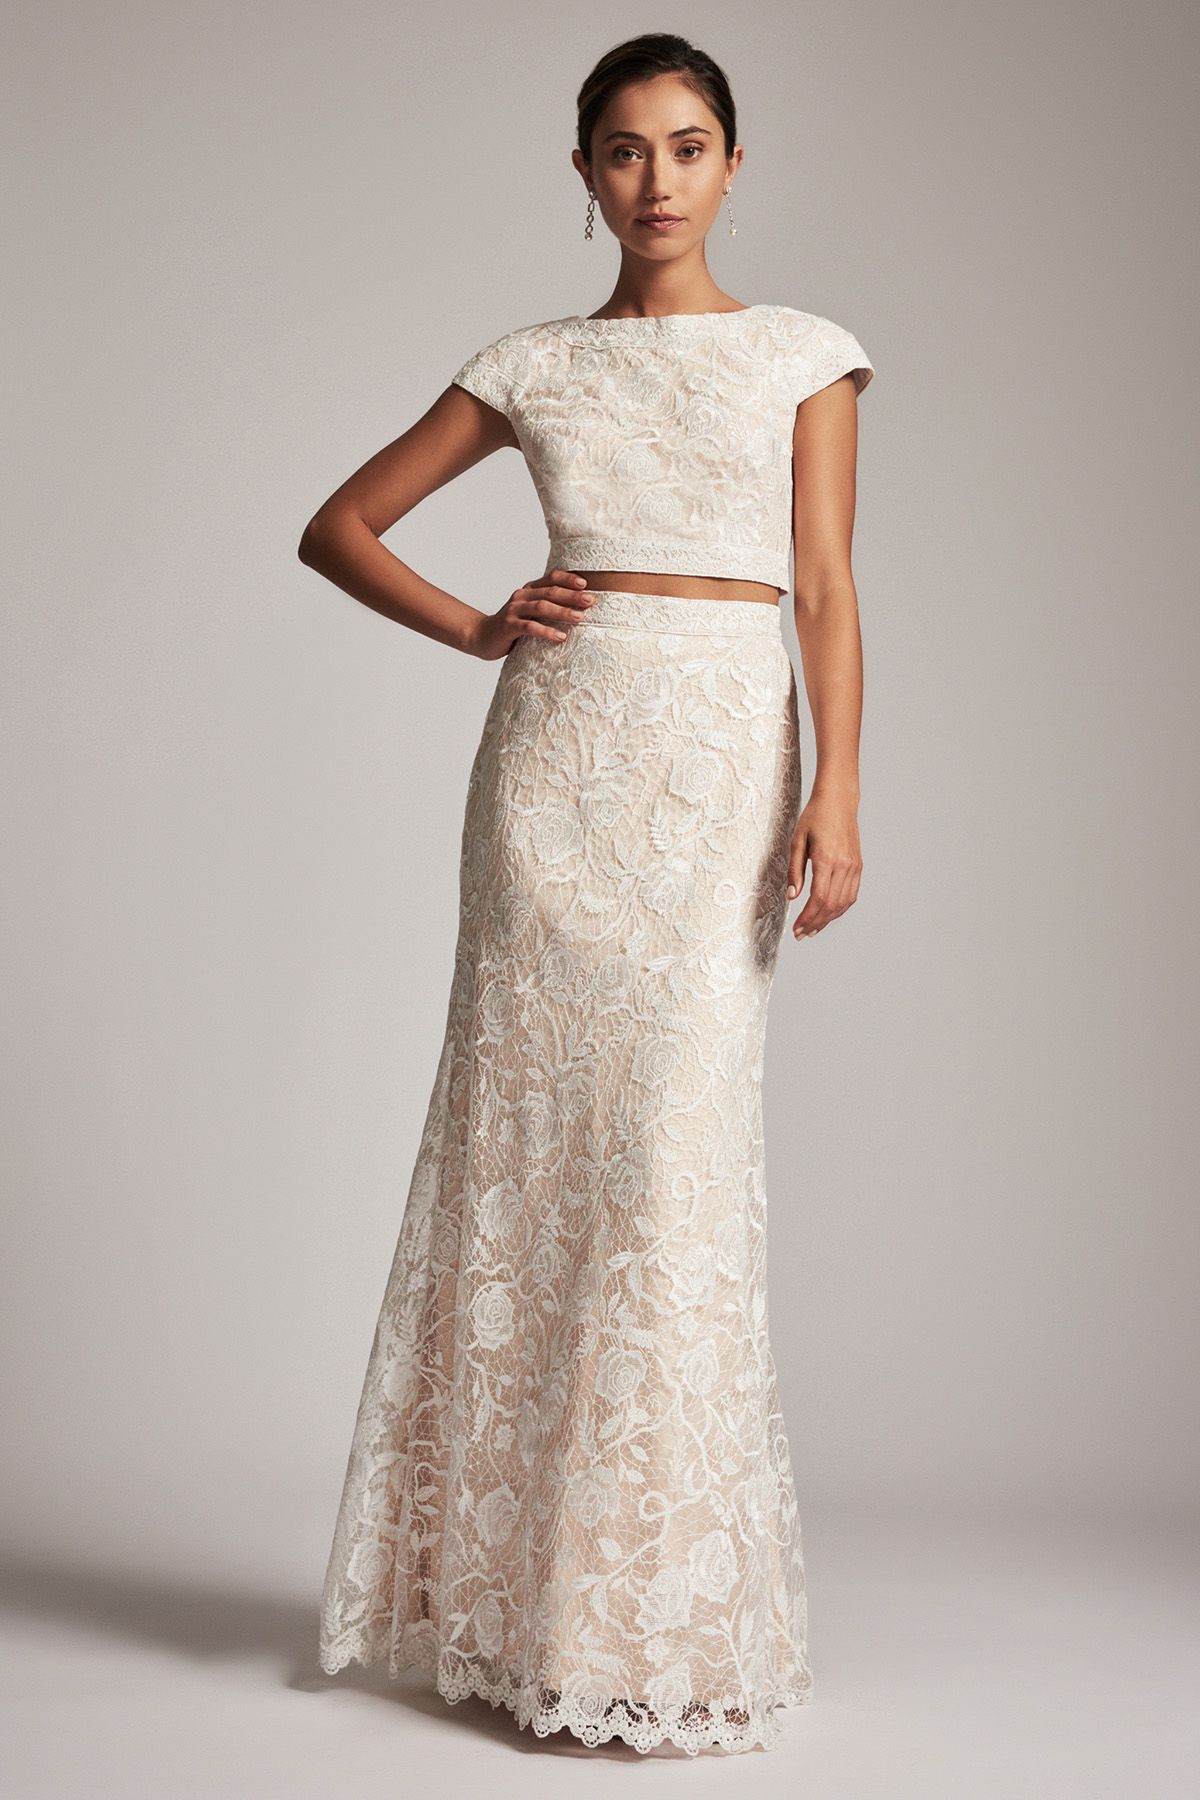 50 Off Select Bridal Styles At Tadashi Shoji Limited Time Only S And Deals Wedding Dresses